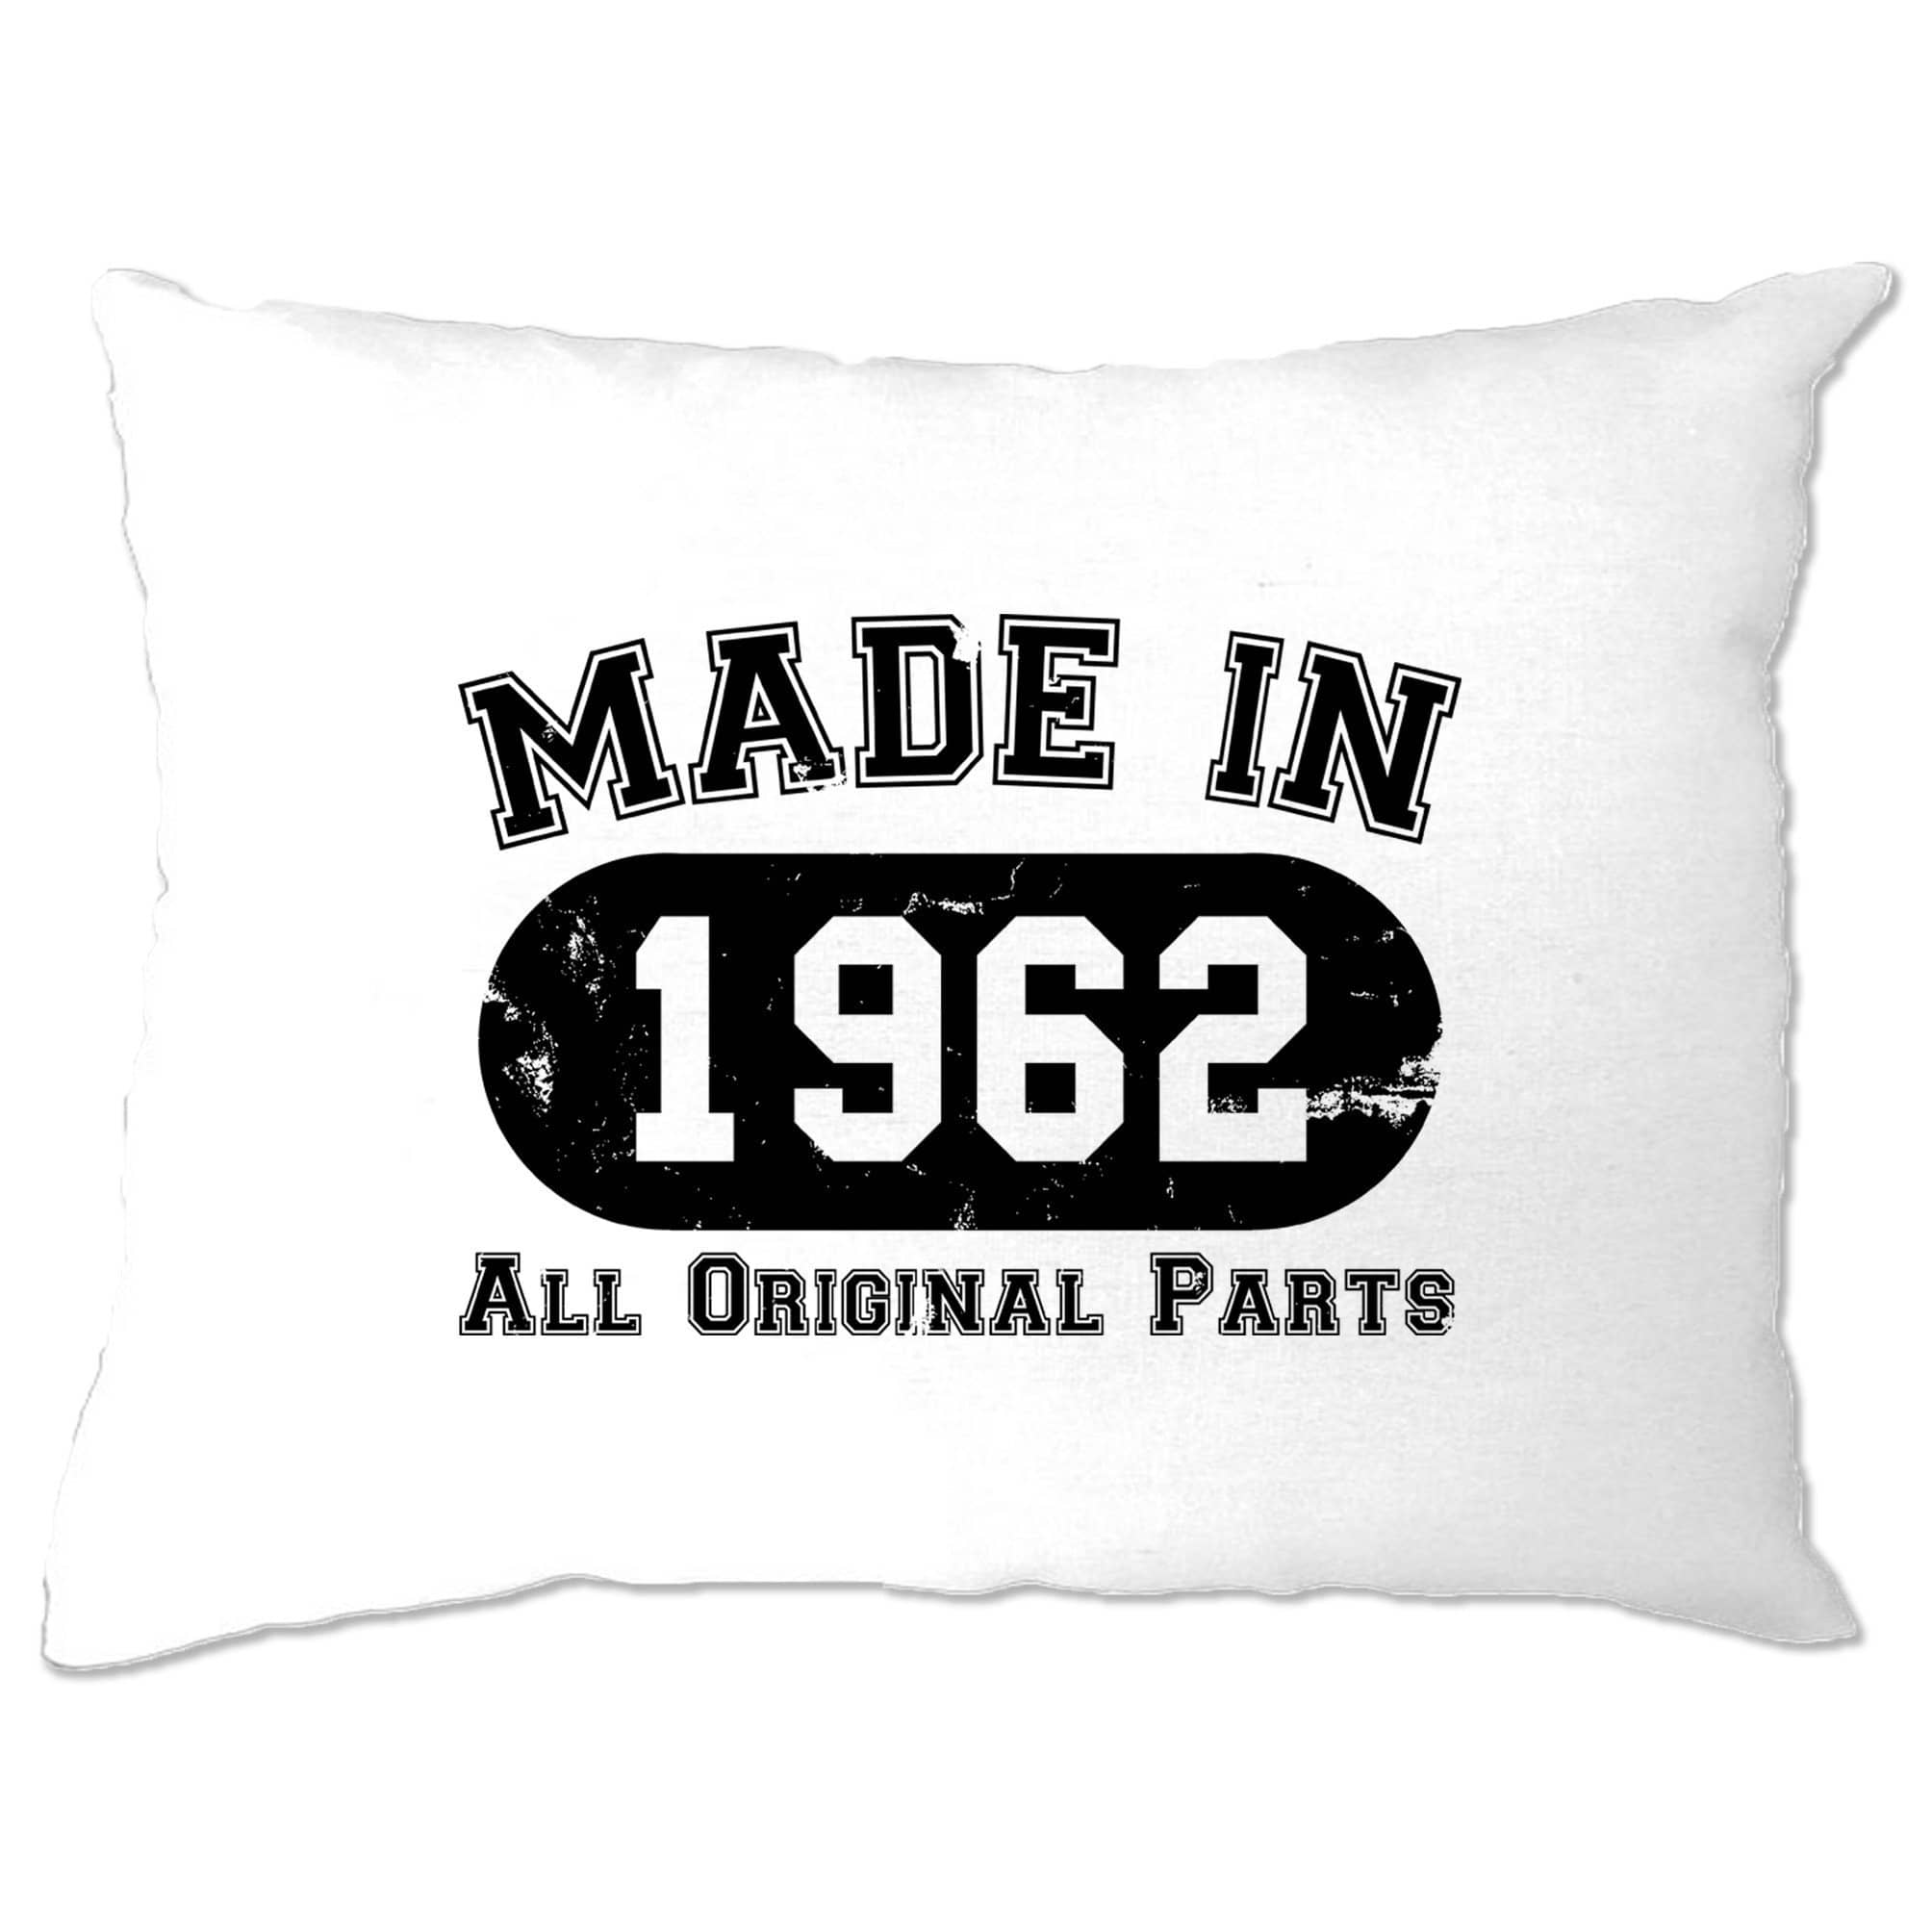 Made in 1962 All Original Parts Pillow Case [Distressed]